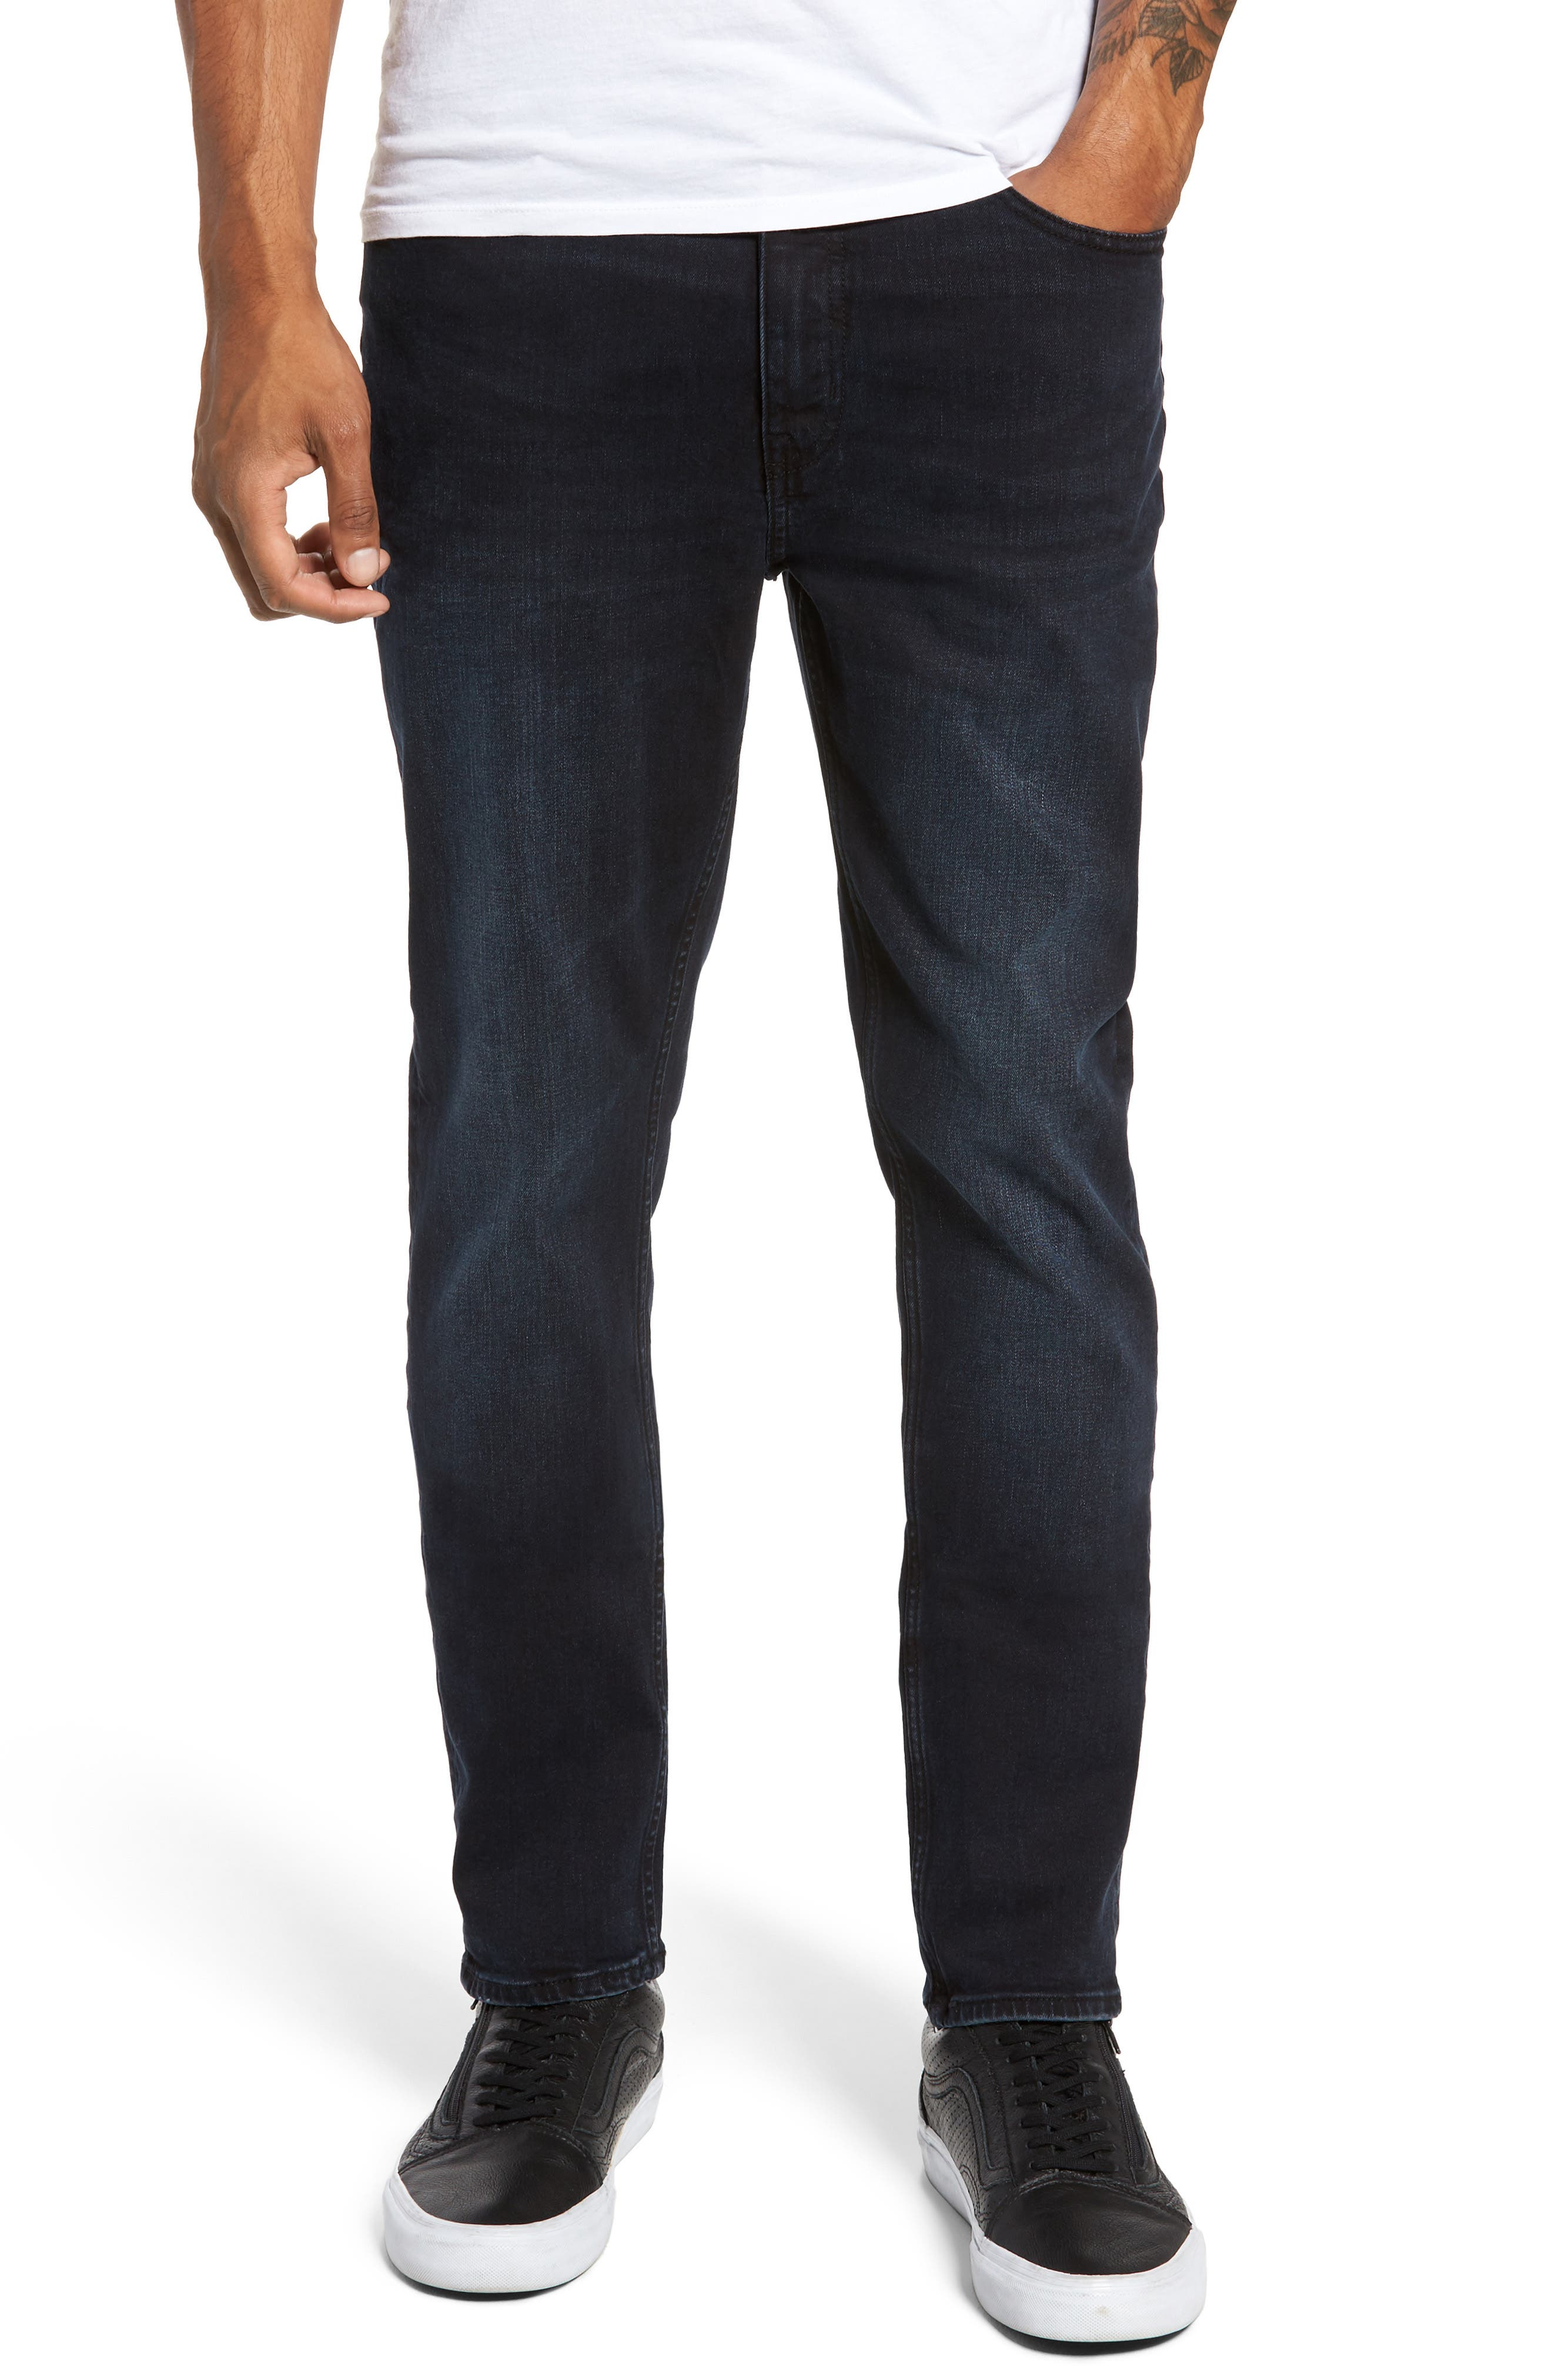 Sonic Skinny Fit Jeans,                         Main,                         color, Blue/ Black